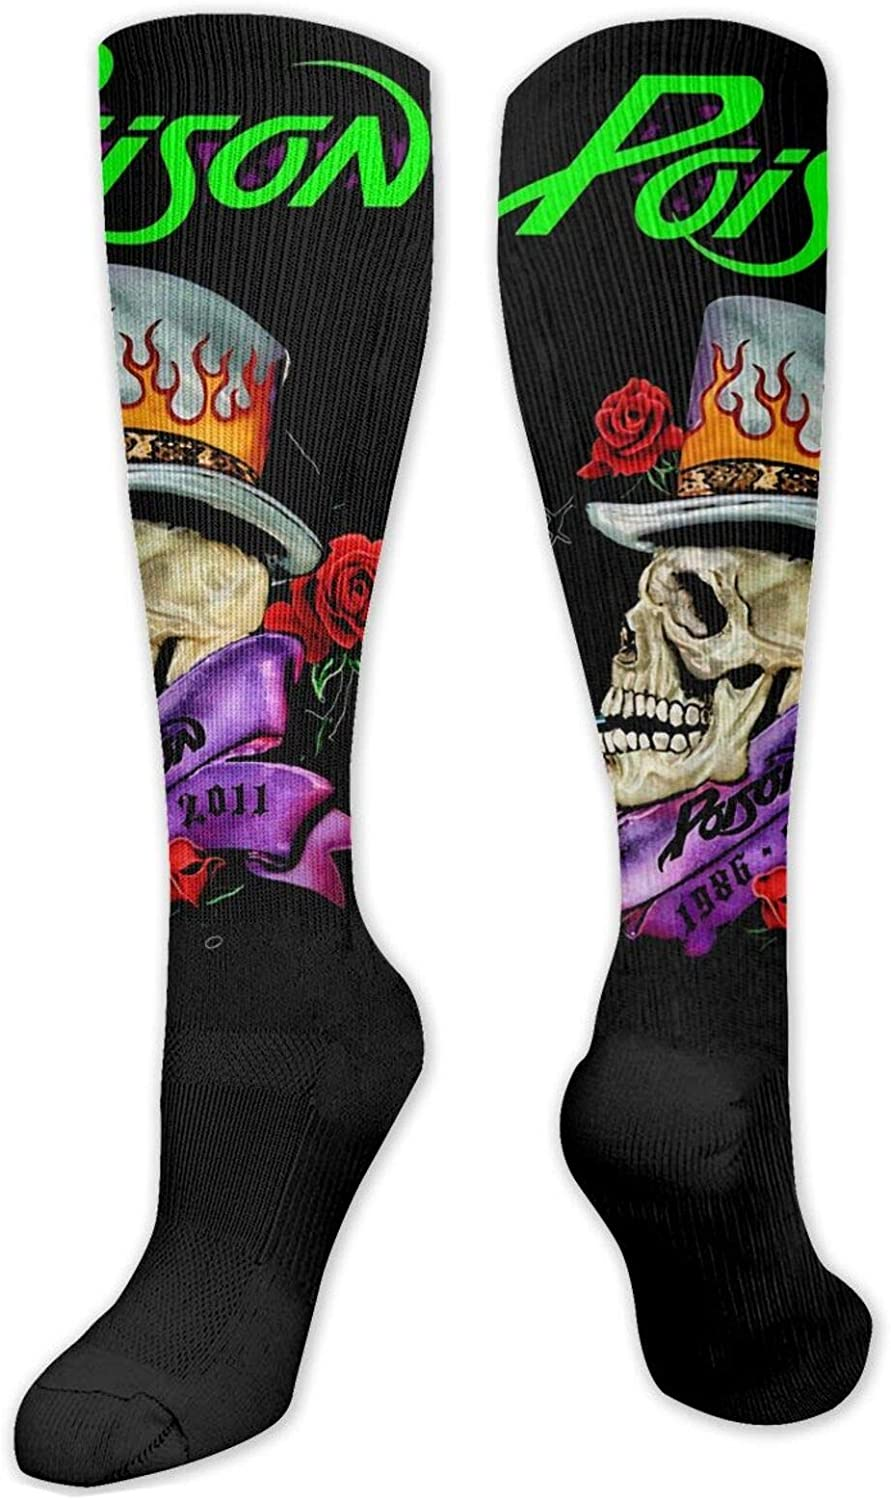 P-O-I-S-O-N Knitted Socks Are Not Tight Legs, Knitted Socks Are Not Easy To Slip Off, Light, Wear-Resistant, Sweat-Wicking